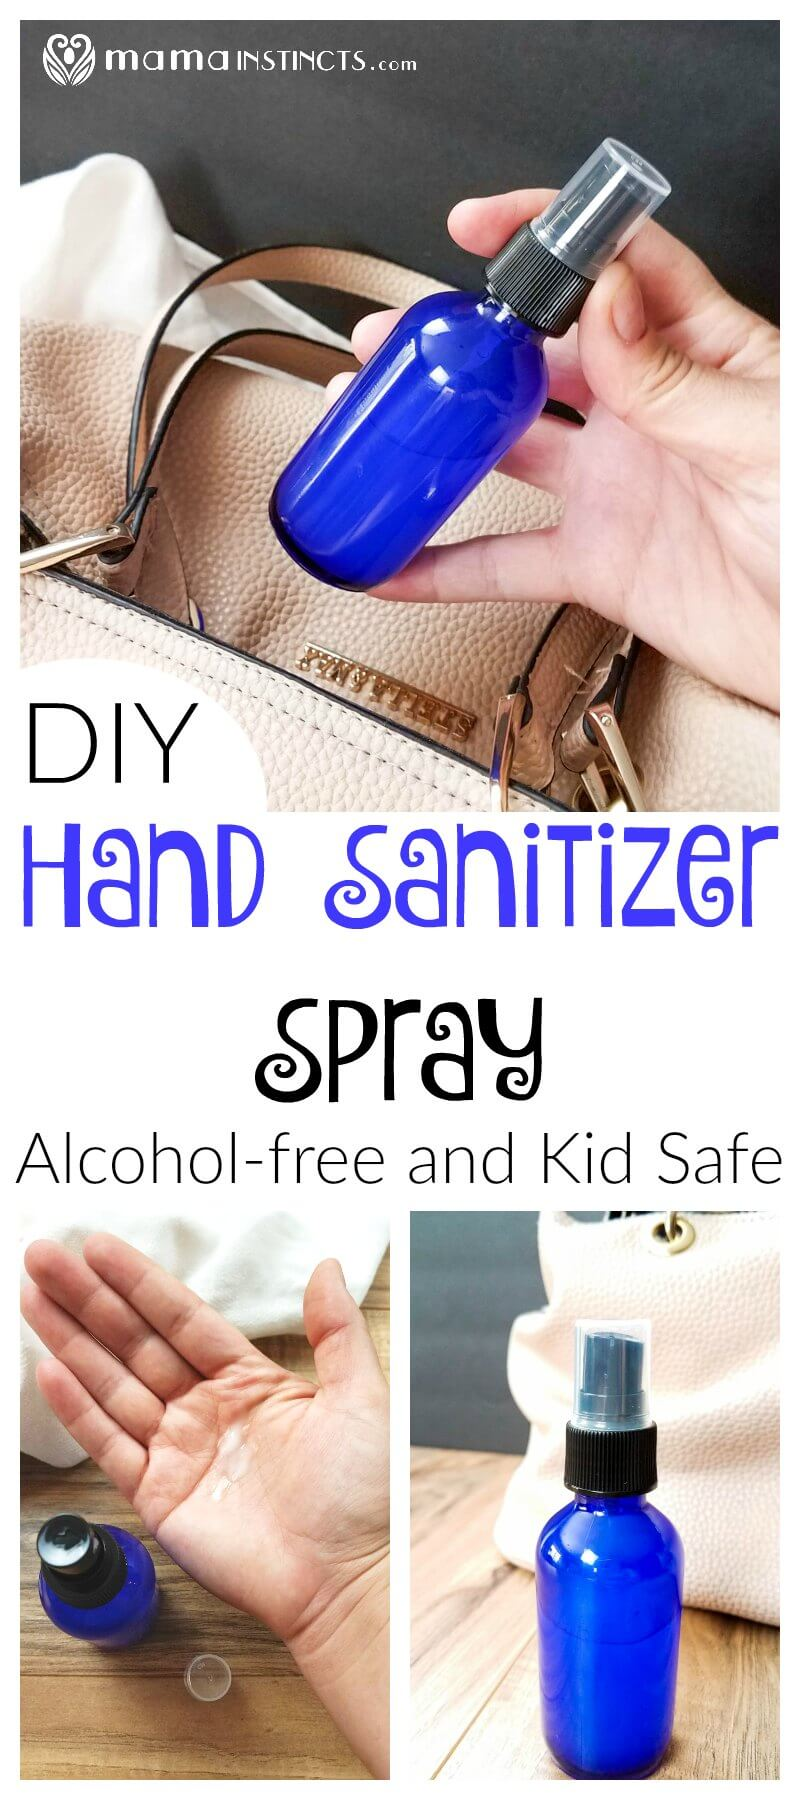 Try this kid-safe, non-toxic and effective hand sanitizer recipe. This DIY hand sanitizer is gentle on your hands and kills germs. Plus it only takes a minute to make.